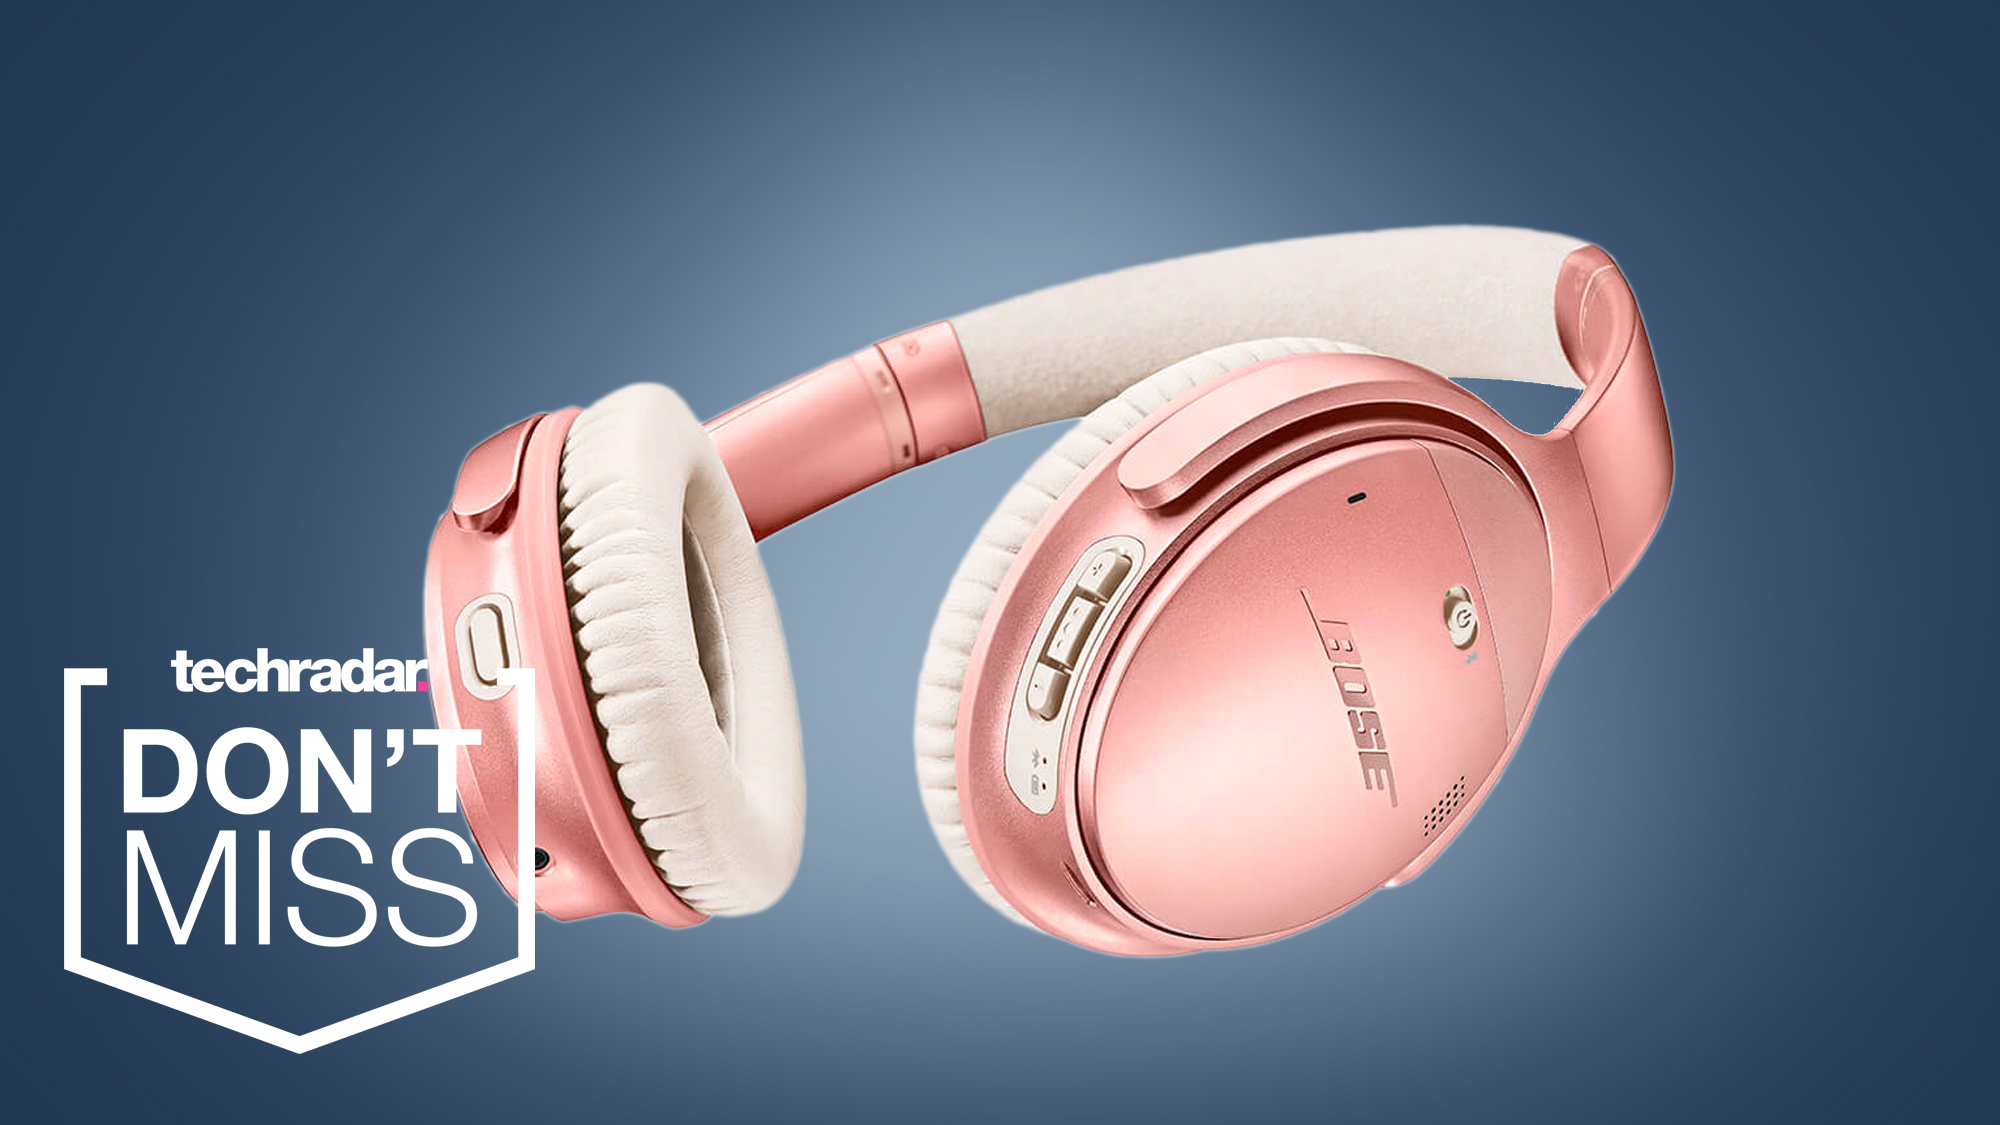 Bose's excellent noise-cancelling headphones plummet to lowest-ever price